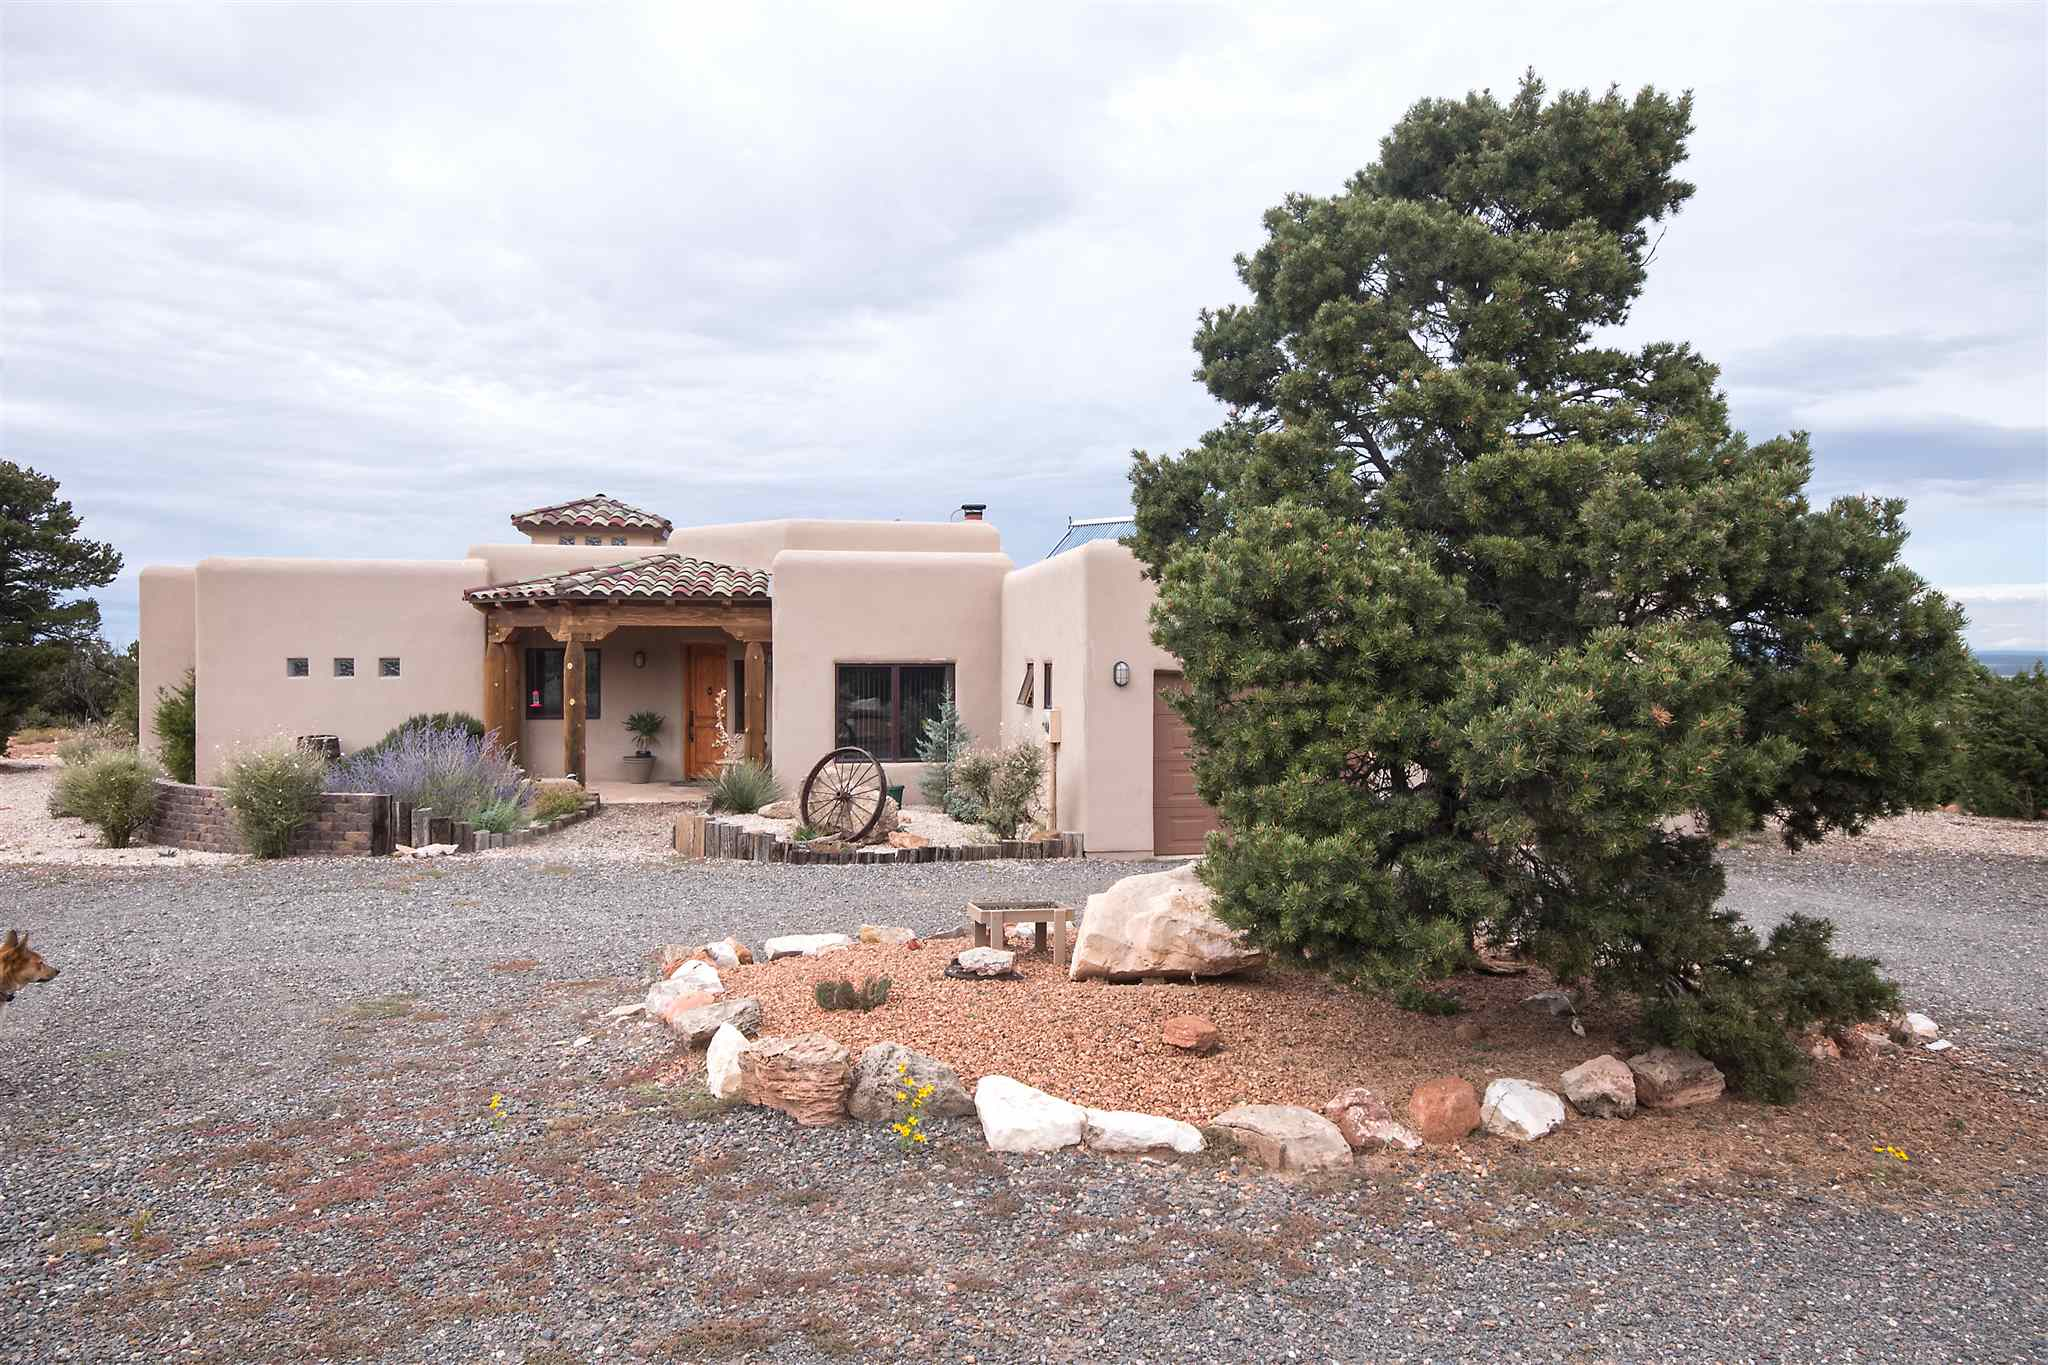 """Deer Canyon Preserve horse property surrounded by nature with sweeping views of the Manzano Mountains and Chupedero Mesa. This special conservation oriented community comprises over 18,000 acres of which half are protected by conservation easements. There miles of hiking and riding trails and wildlife abounds. This custom built house is super energy efficient and offers open concept living with multiple entertainment spaces both indoors and out. Brick floors throughout and Southwestern design with vigas and wood accents. Check out this special place to call home. This is a perfect retirement home, second home or """"work from home"""" spot. Set up an appointment to see it today"""